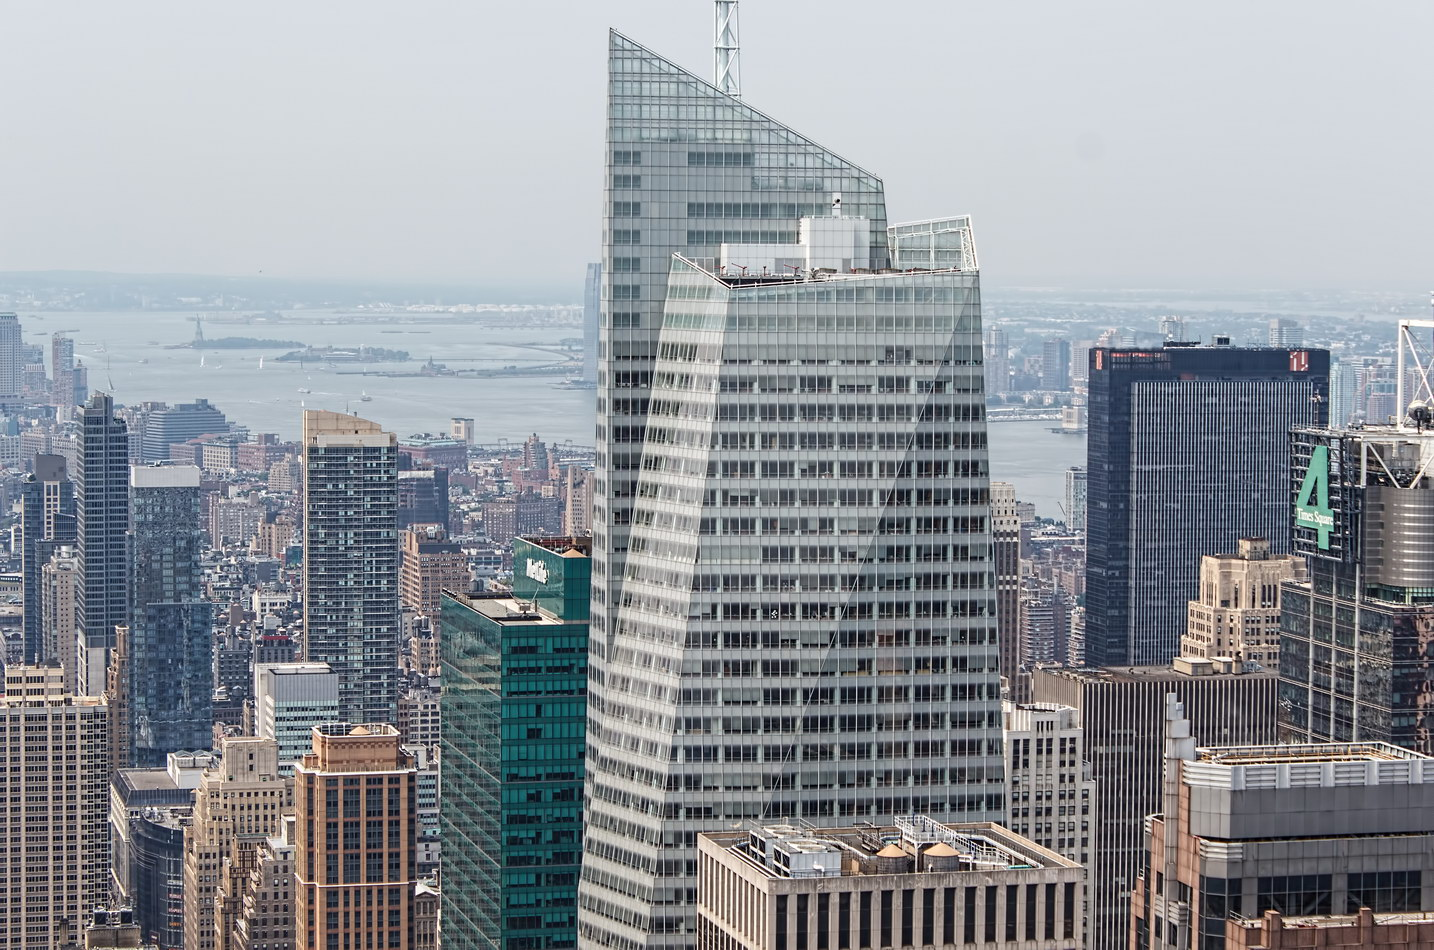 New Museum New York City, New York Architecture Photos: Bank of America Tower